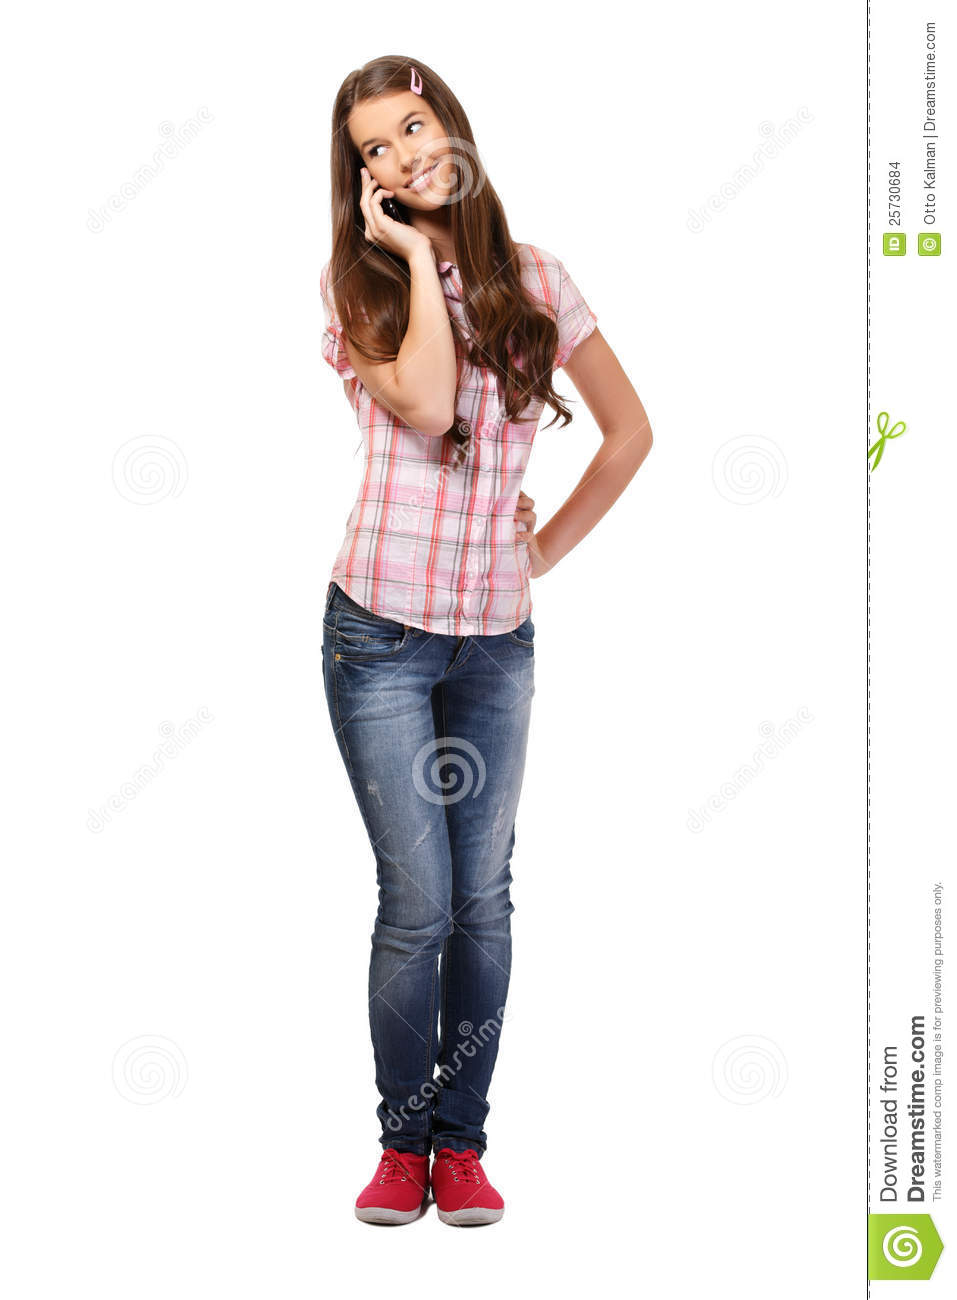 Schoolgirl making a phonecall